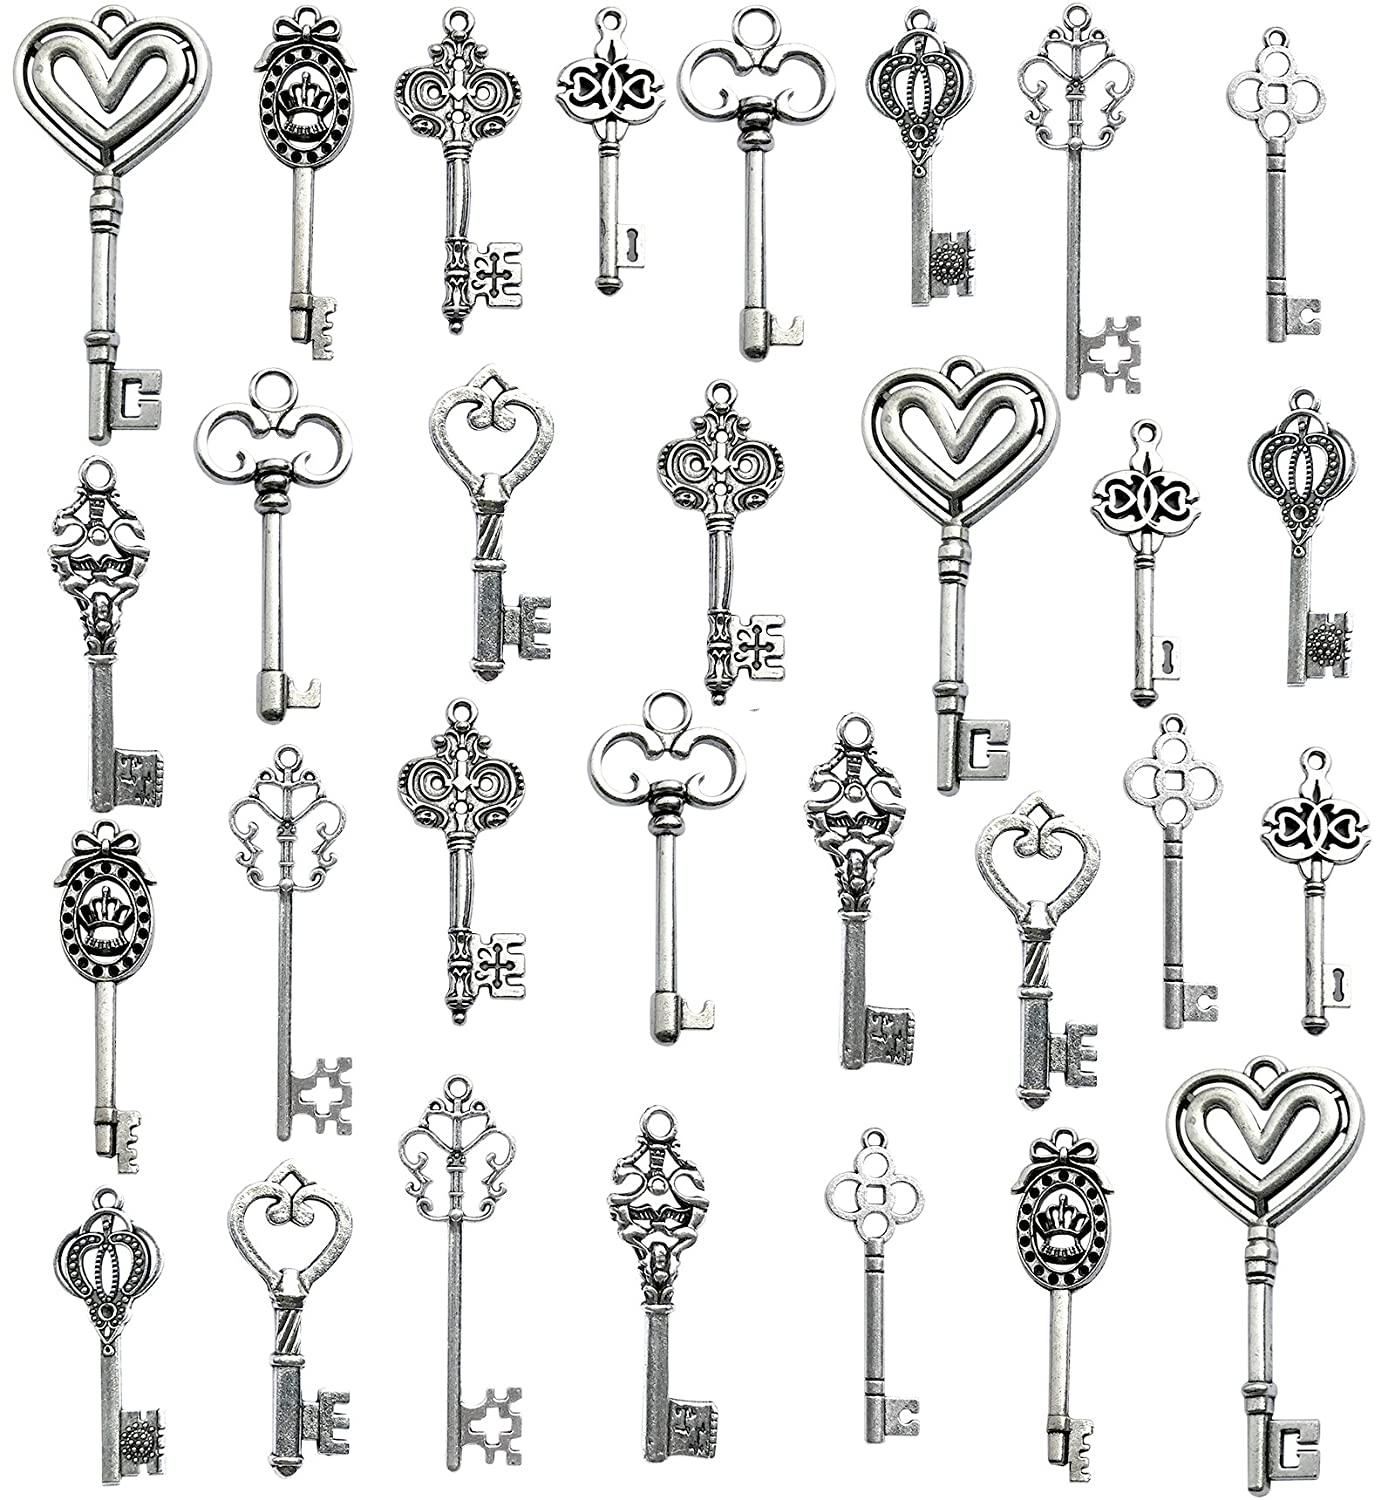 Korlon Mixed Set of 30 Antique Silver Vintage Skeleton Keys - Decorative Old Fashioned Key for Necklace Bracelets Pendants Jewelry DIY Making Supplies Party Favors - 10 Different Style CLN-039-2